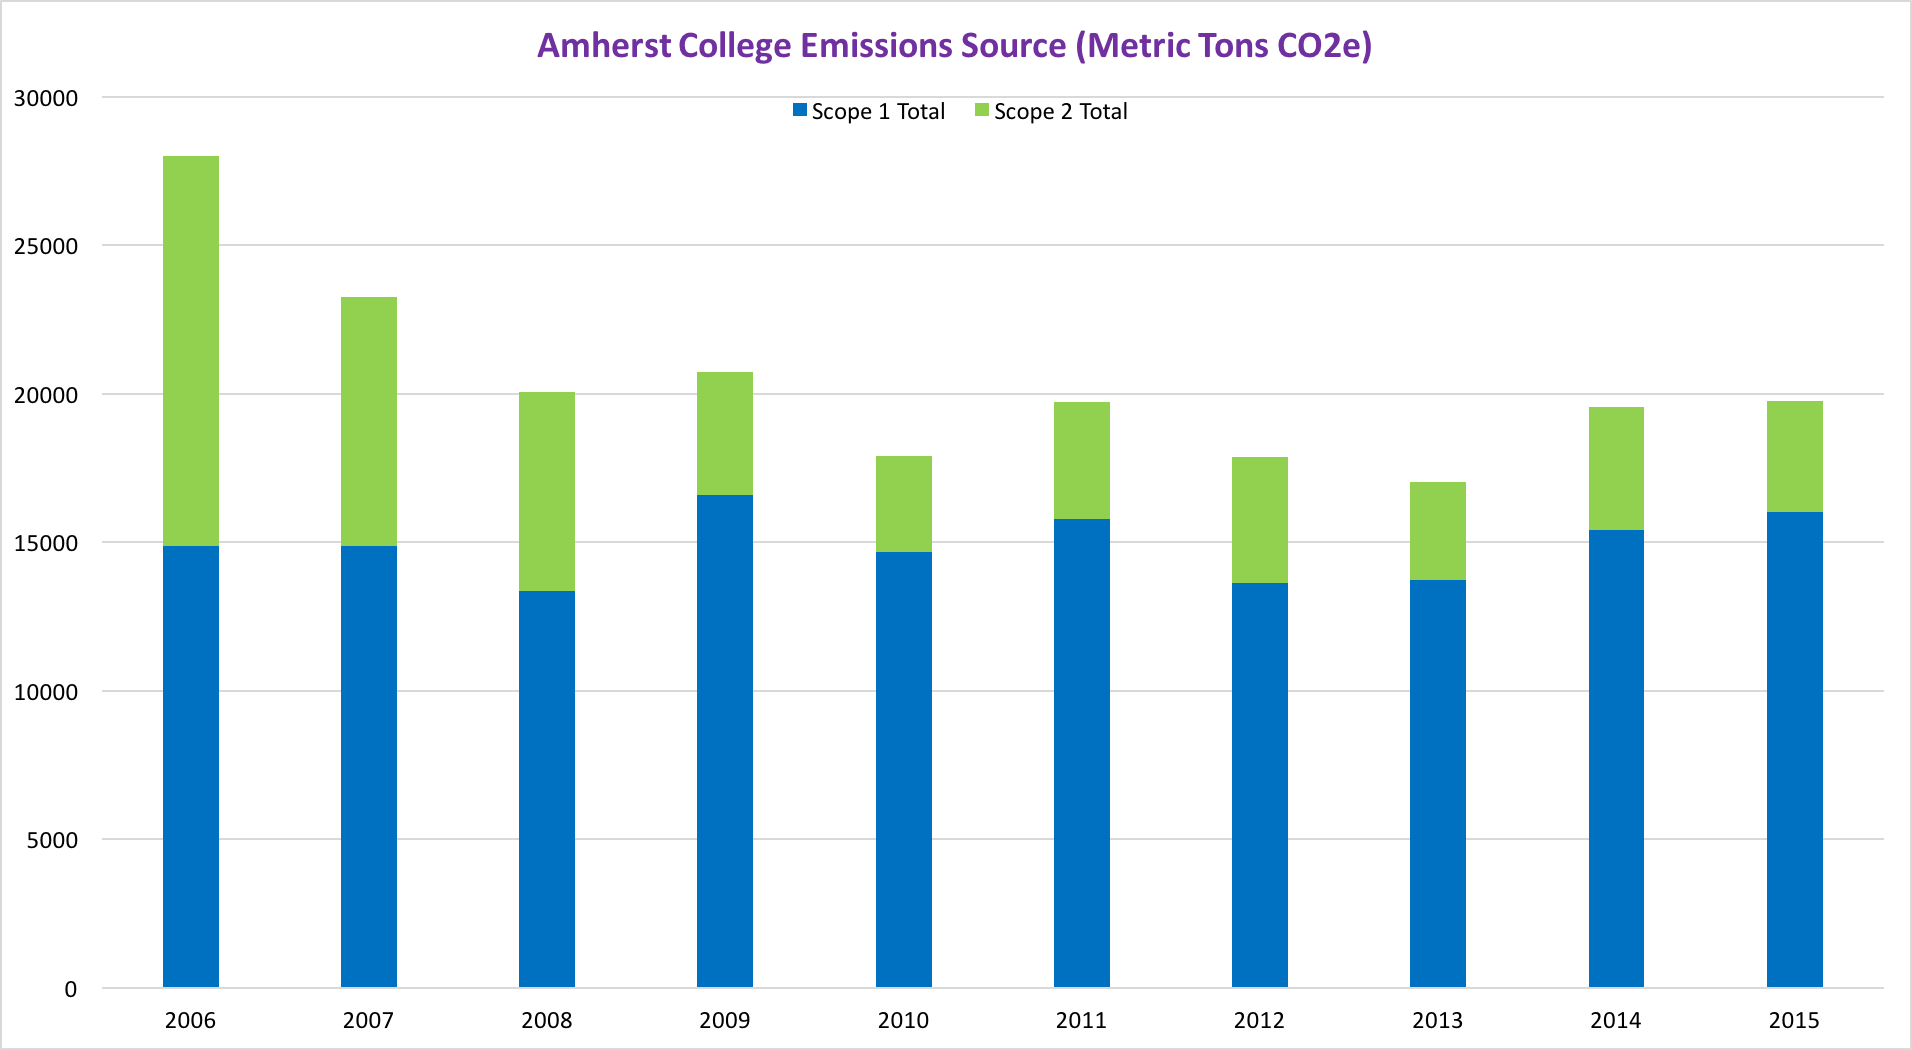 Amherst College Emissions by Scope